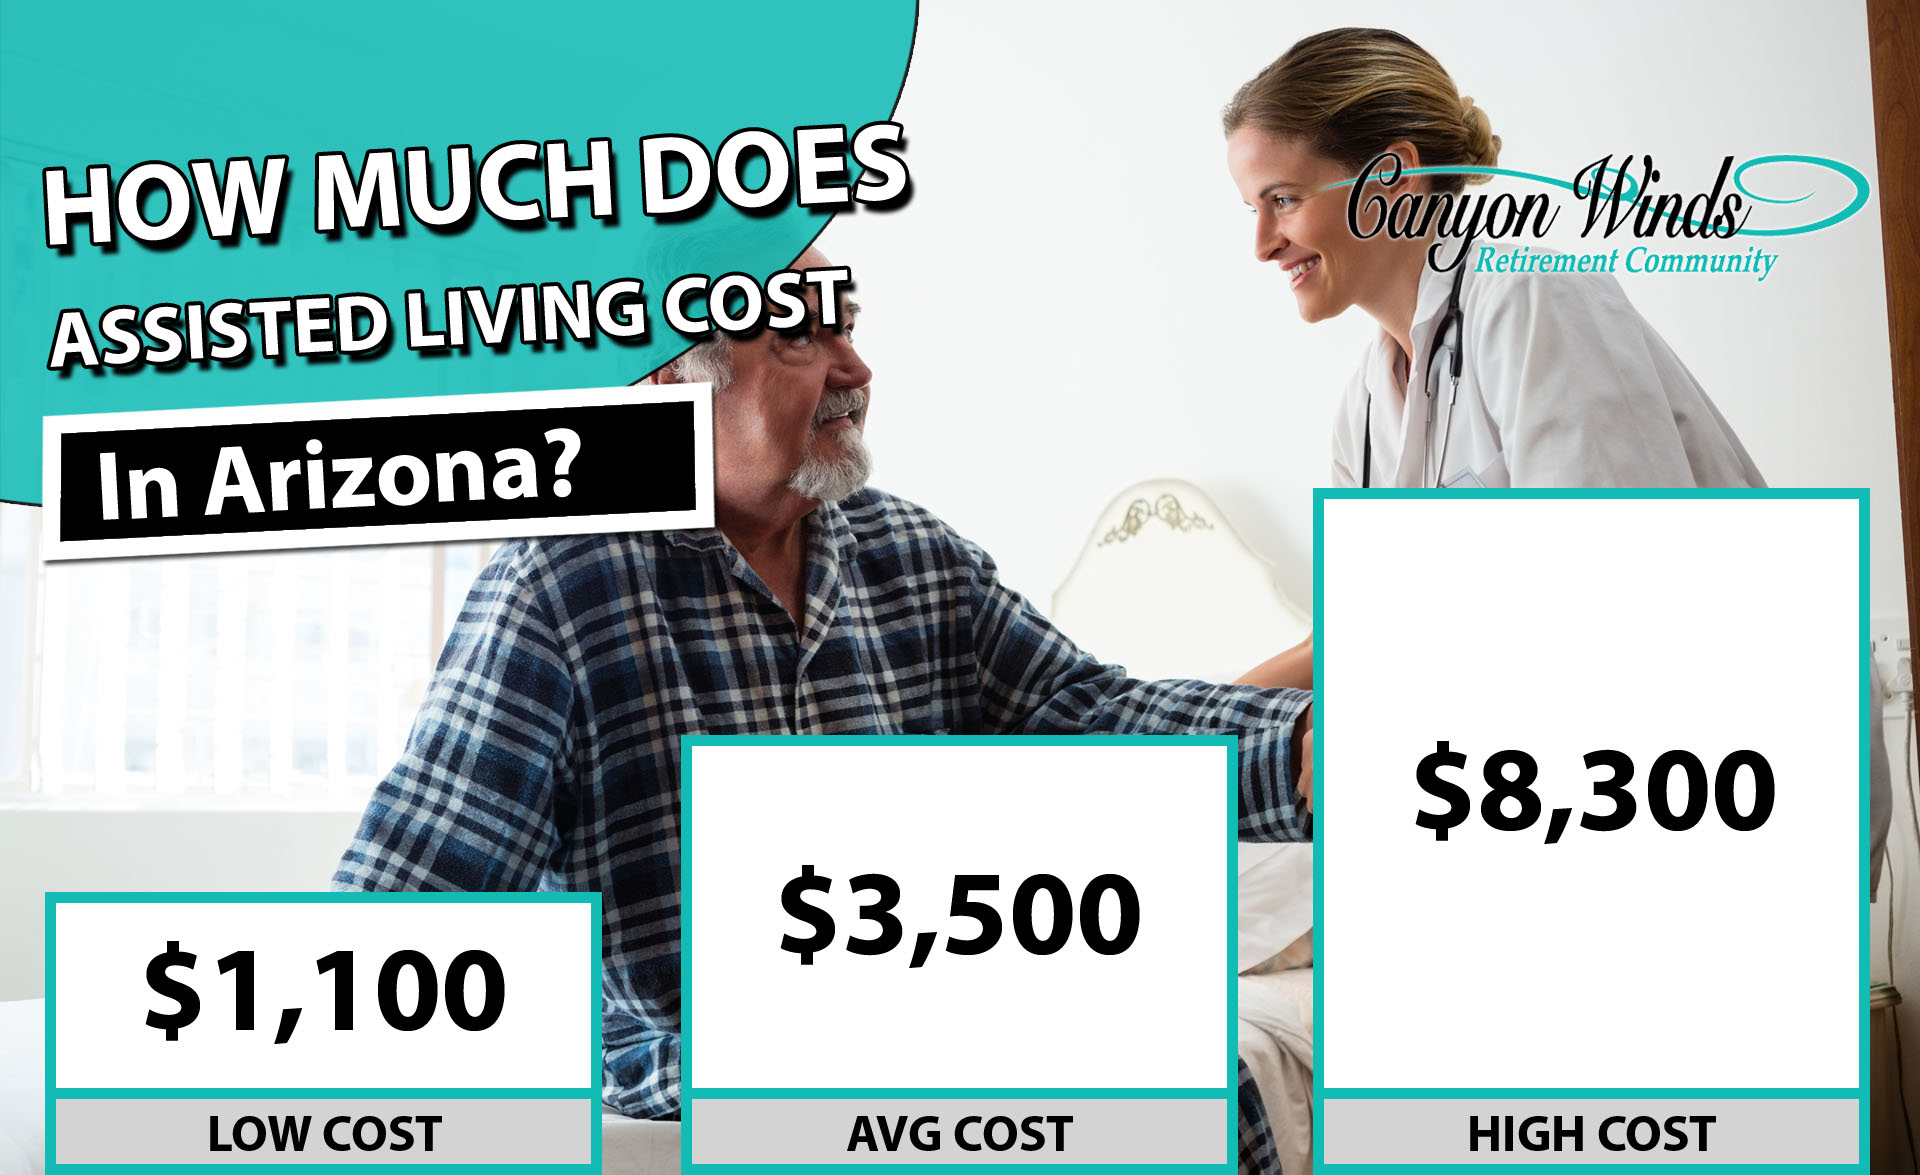 How Much Does Assisted Living Cost in Arizona?